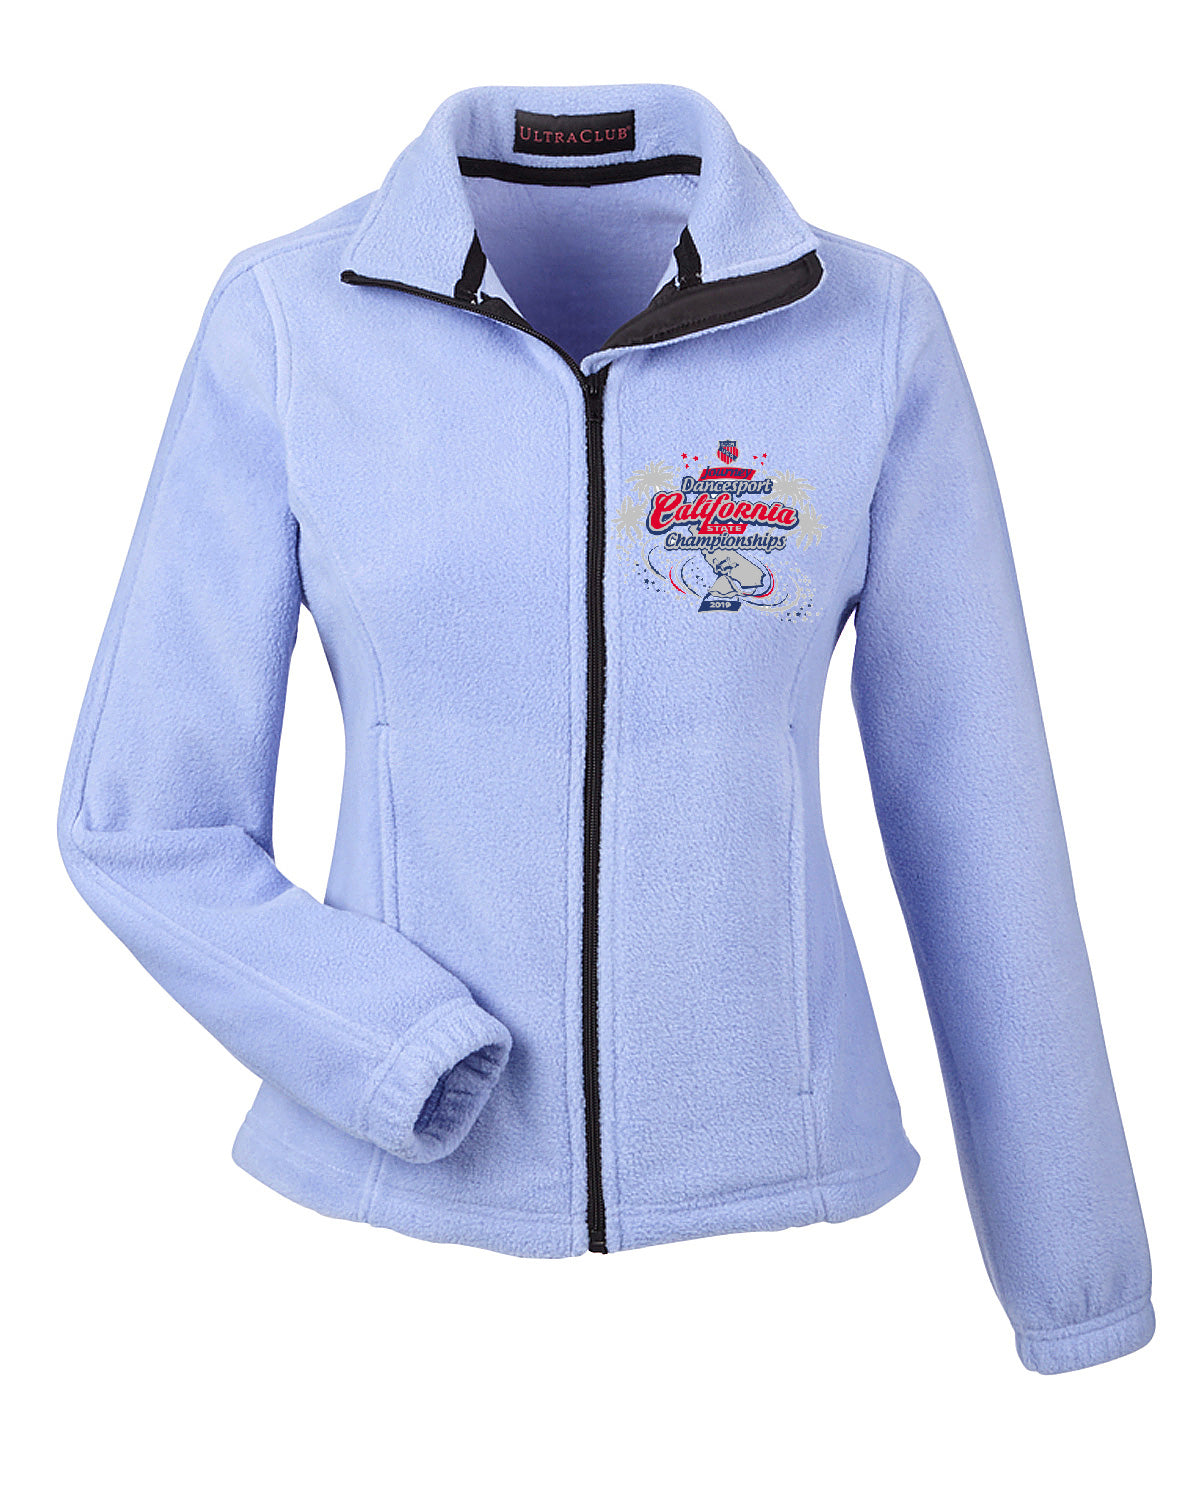 Dancesport Fleece Full-Zip Jacket